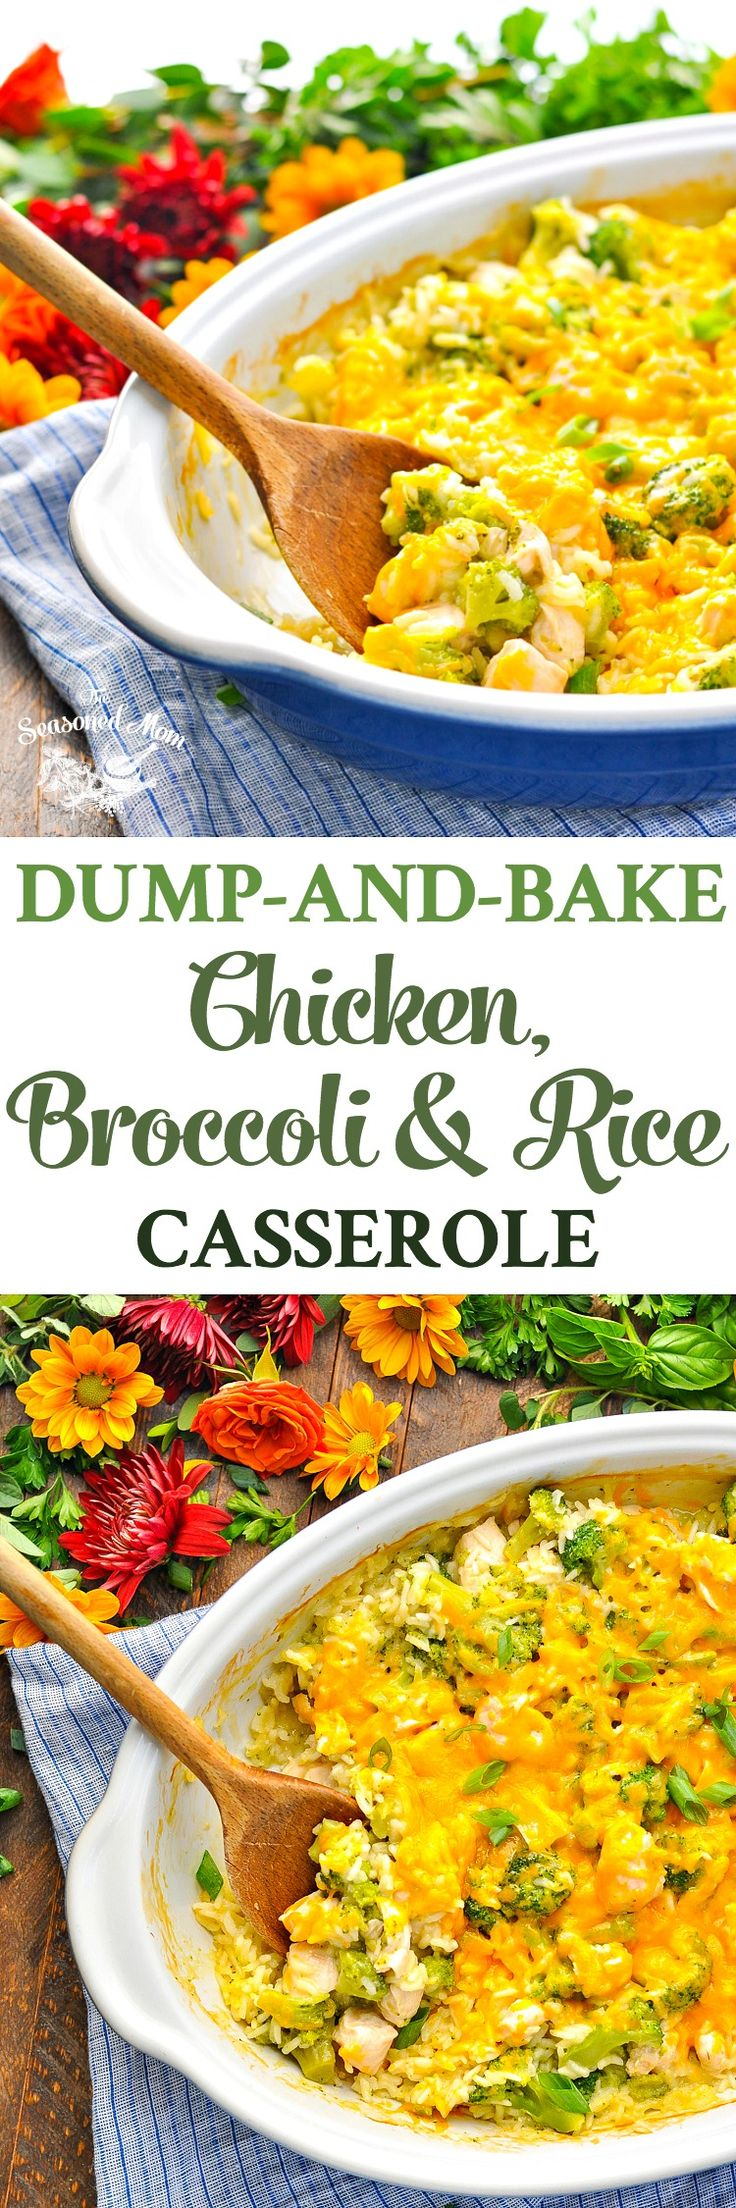 With just 5 ingredients and about 5 minutes of prep, this Dump-and-Bake Chicken Broccoli Rice Casserole is an easy dinner that cooks in one dish! #chicken #dinner #5ingredients